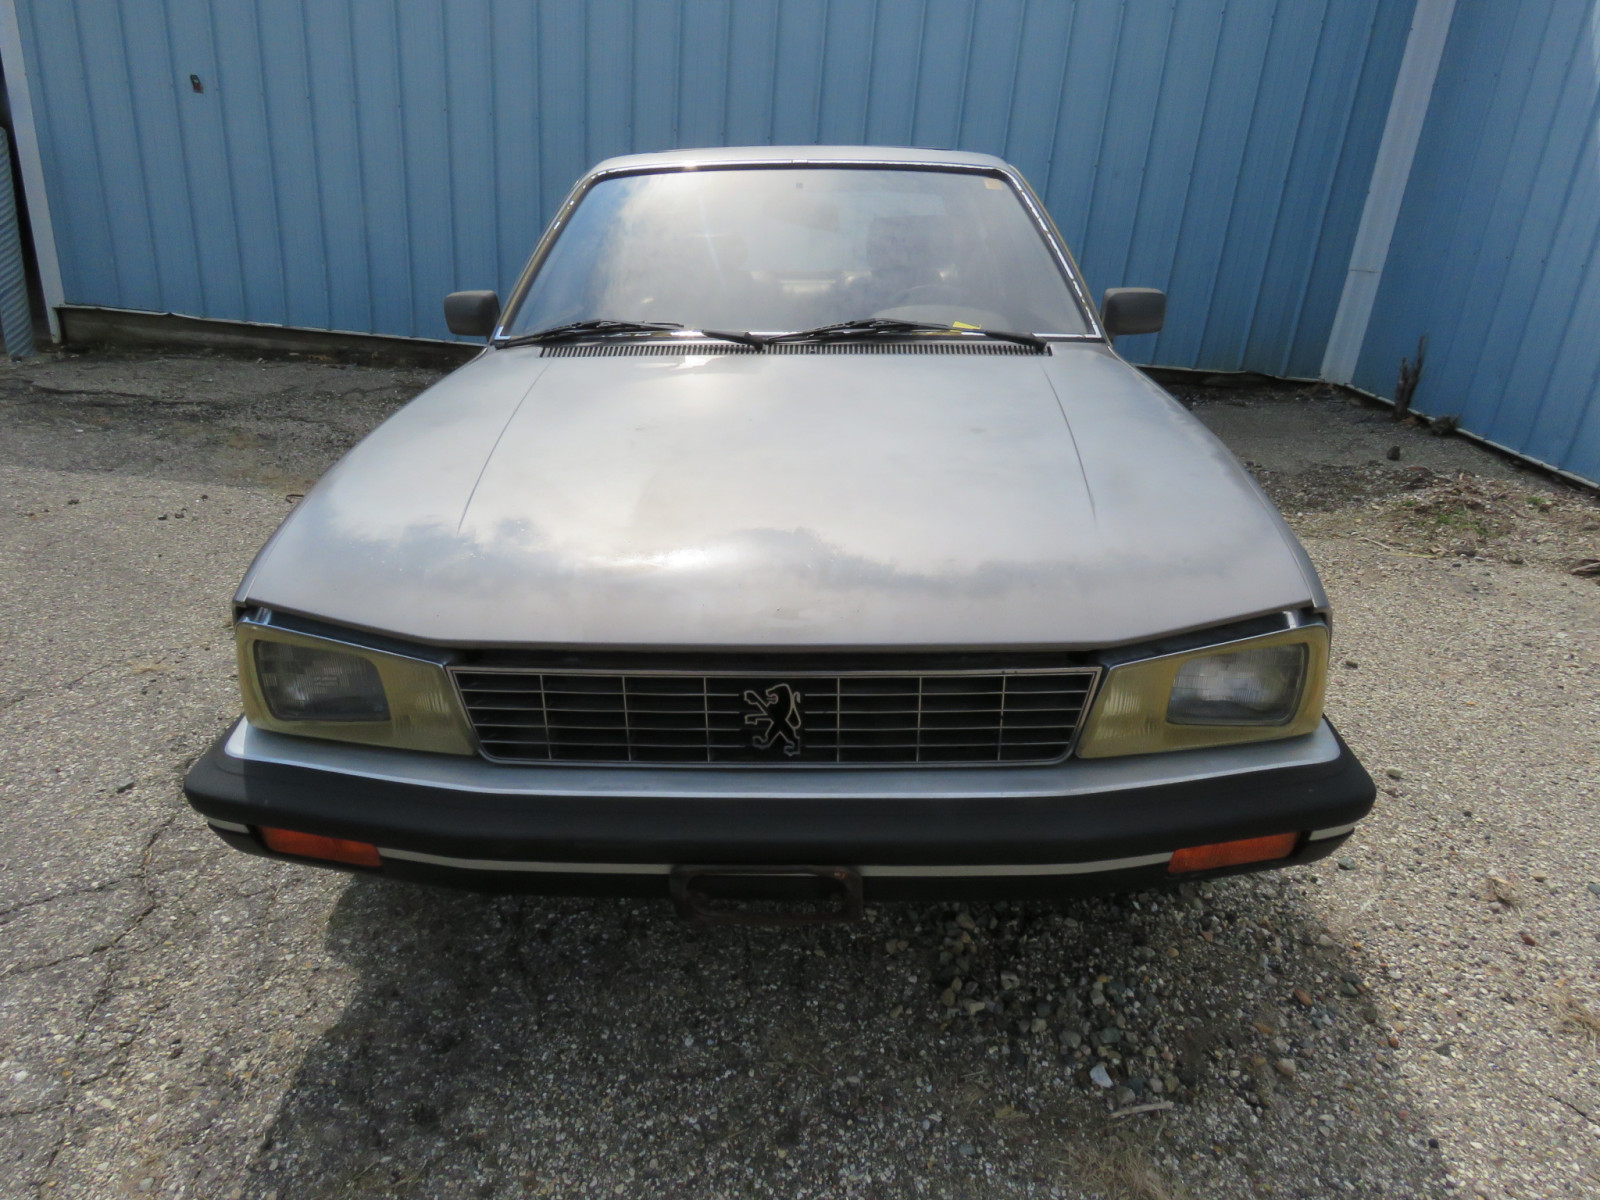 1984 Peugeot 505 STI Turbo D Sedan - Image 2